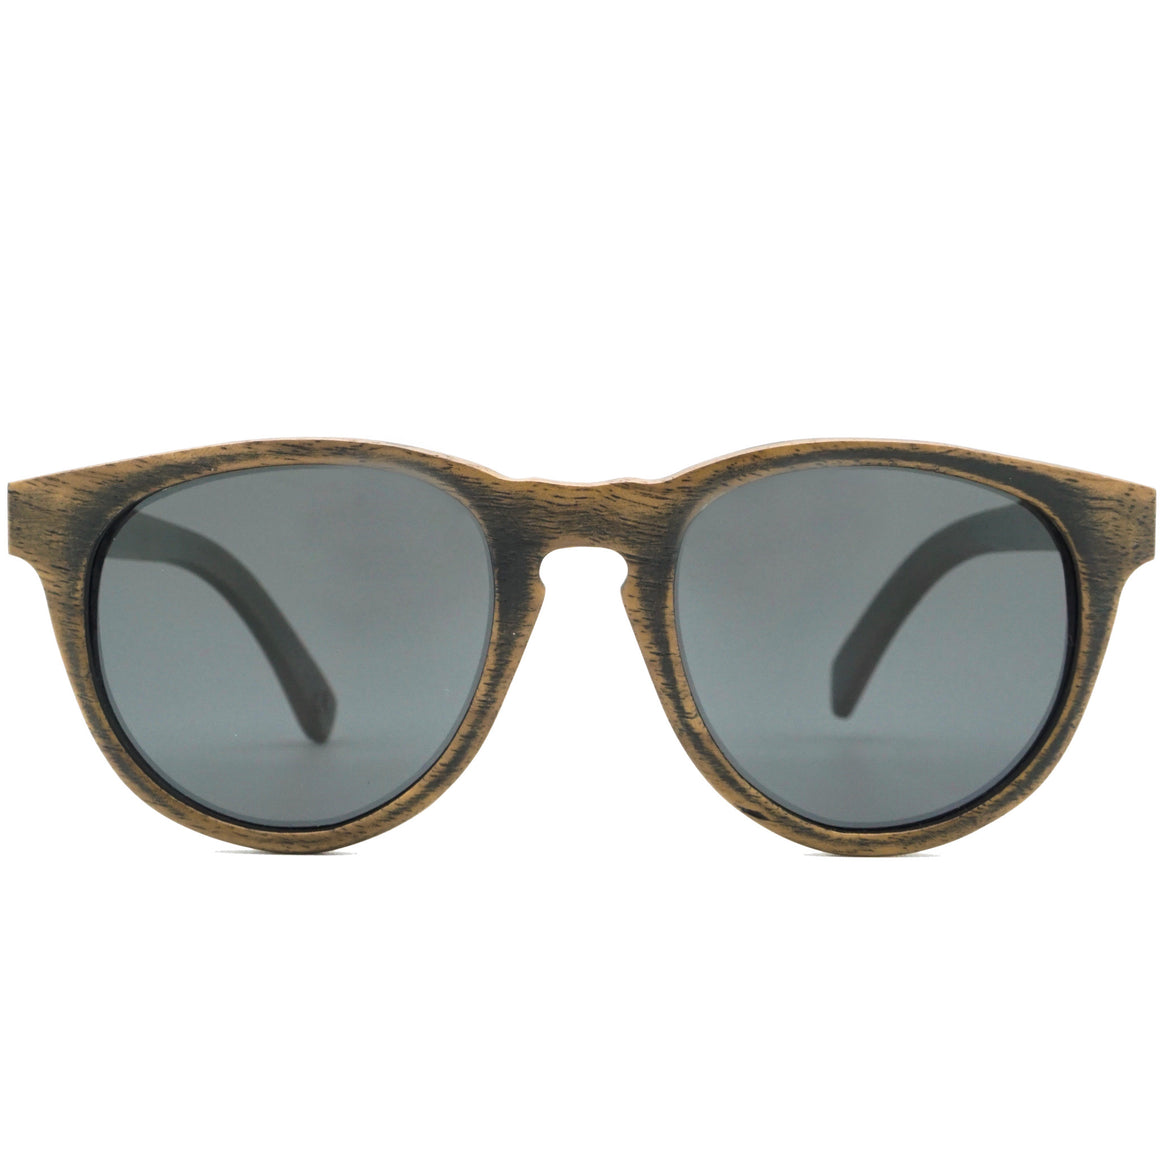 Wear Coastal Wooden Sunglasses MYKONOS